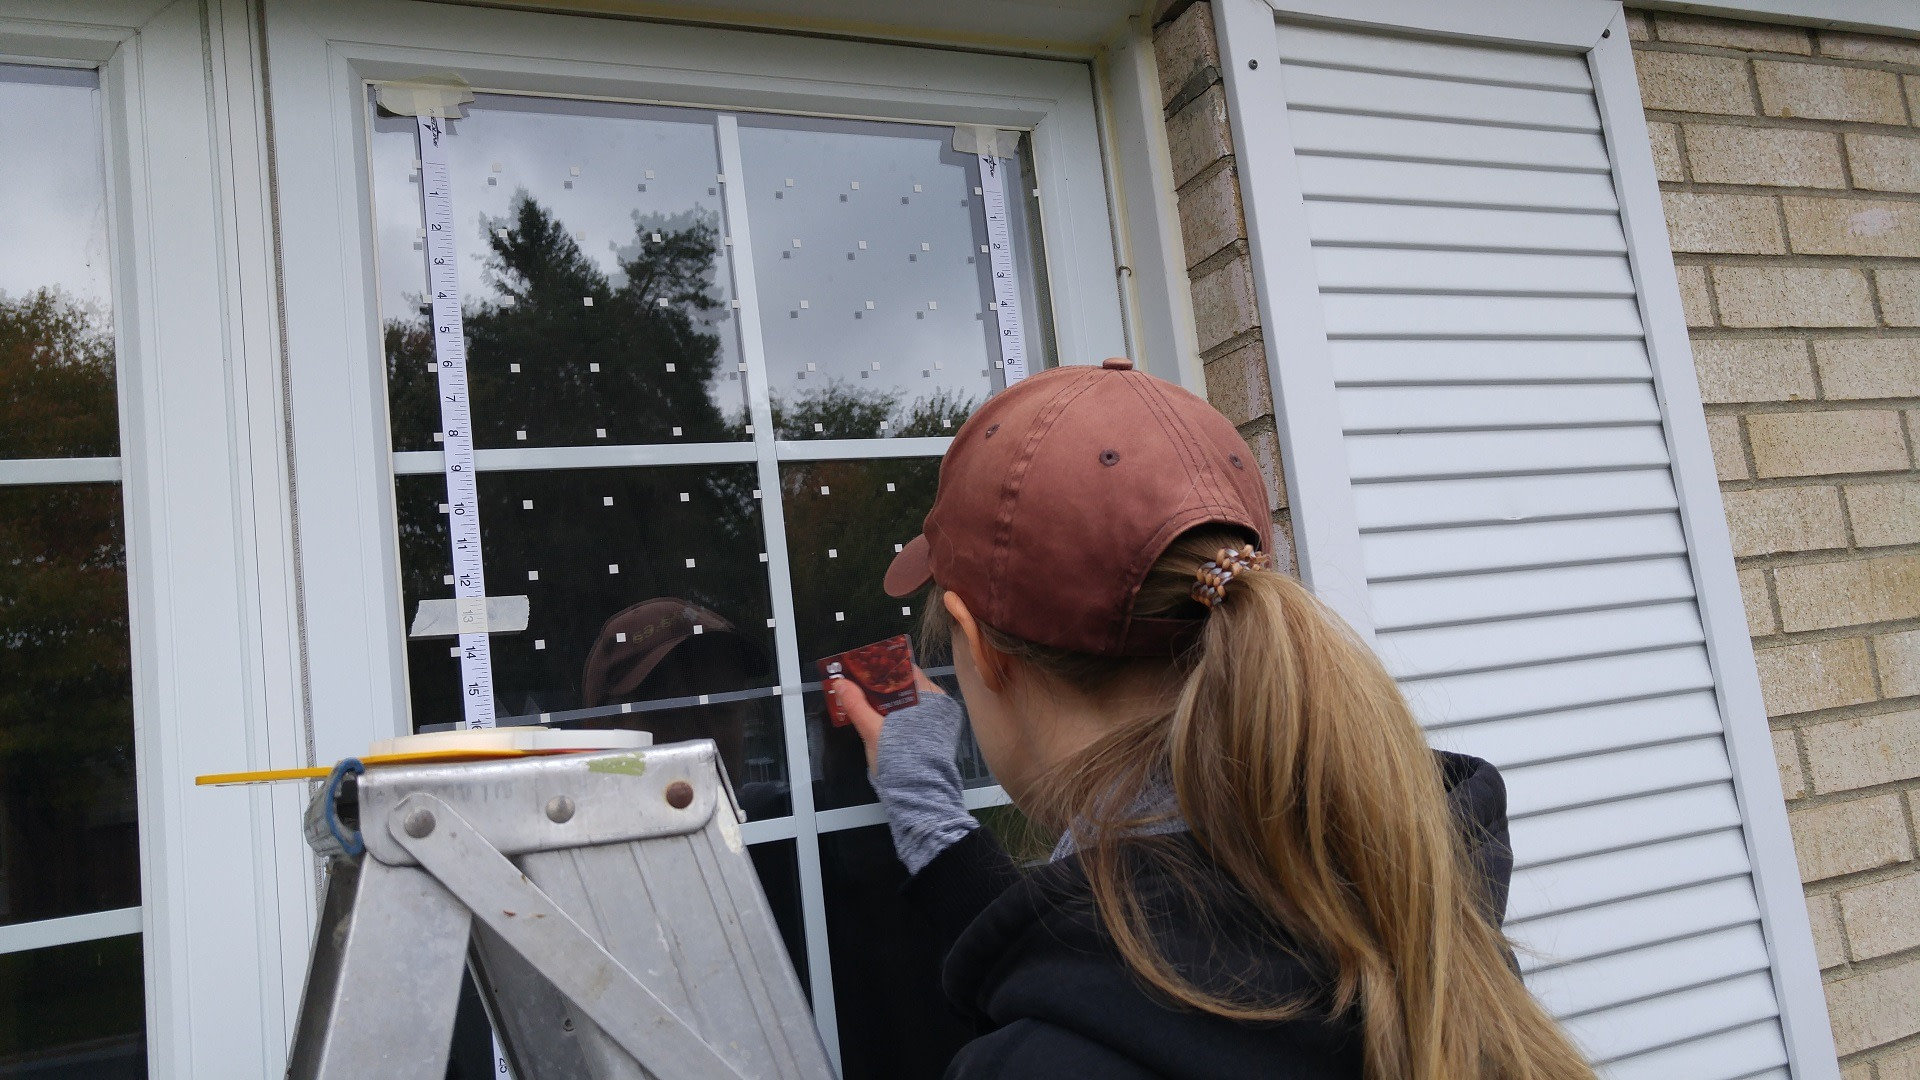 A woman installing window decals for preventing window-bird collisions